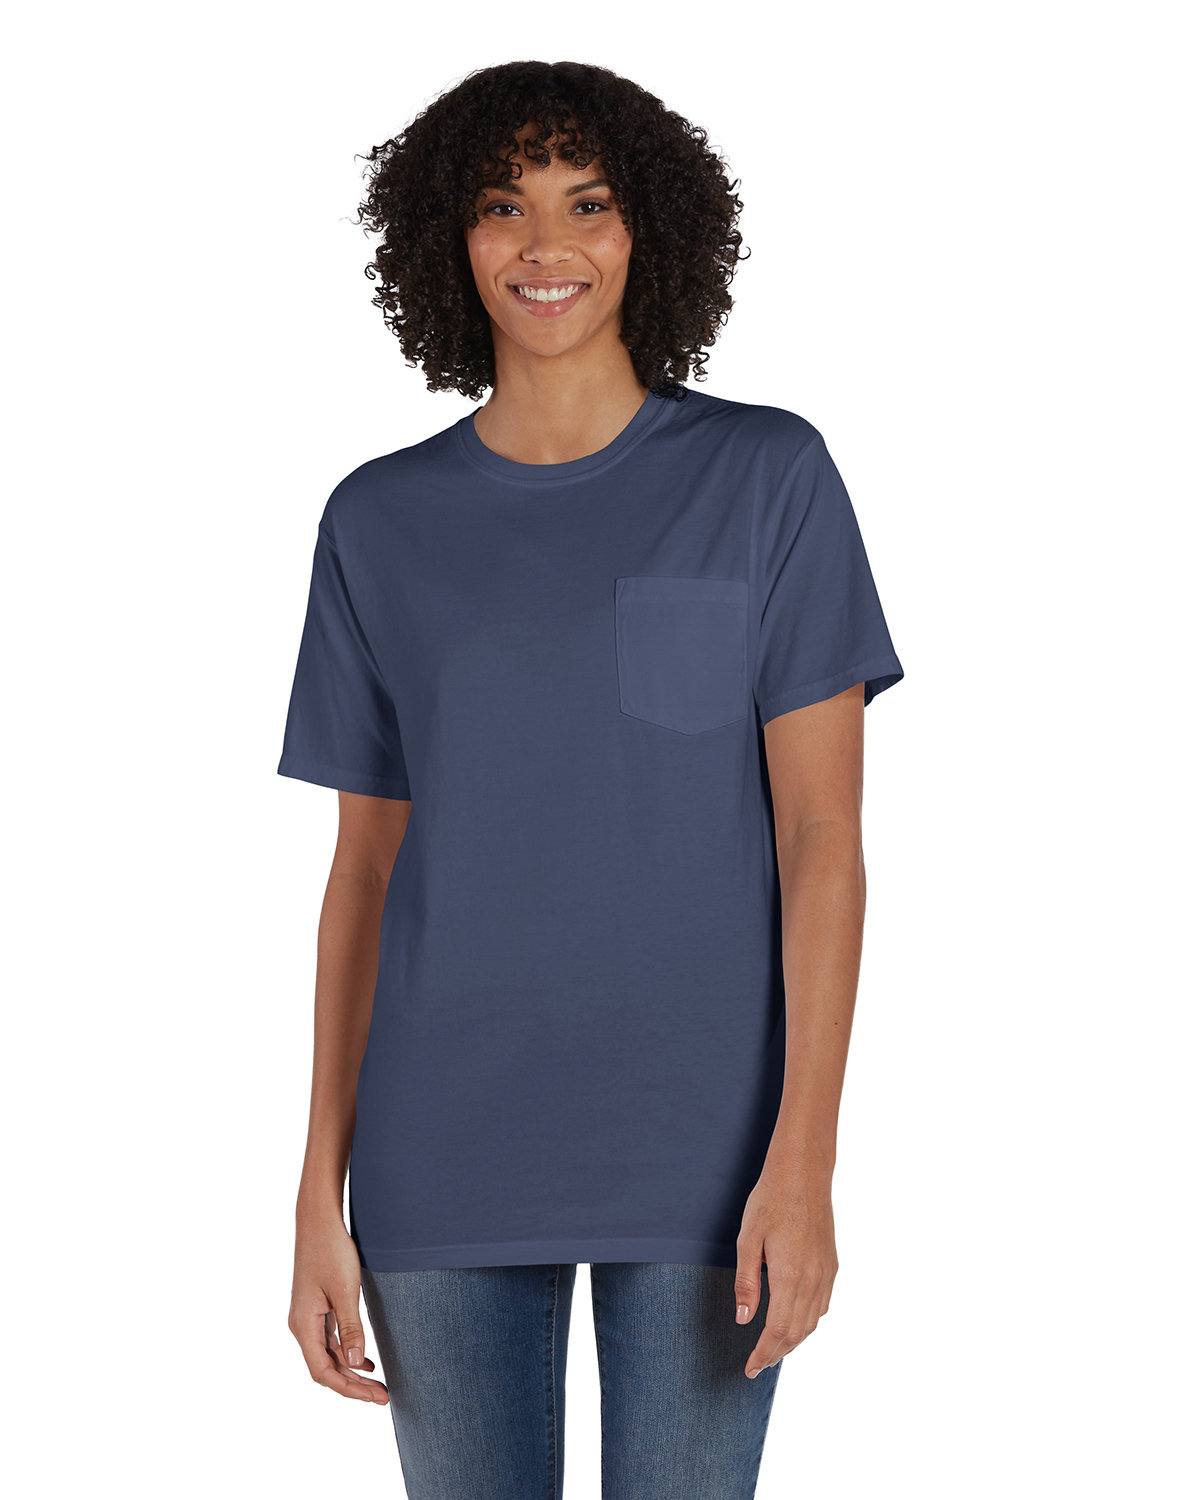 ComfortWash by Hanes Unisex Garment-Dyed T-Shirt with Pocket ANCHOR SLATE